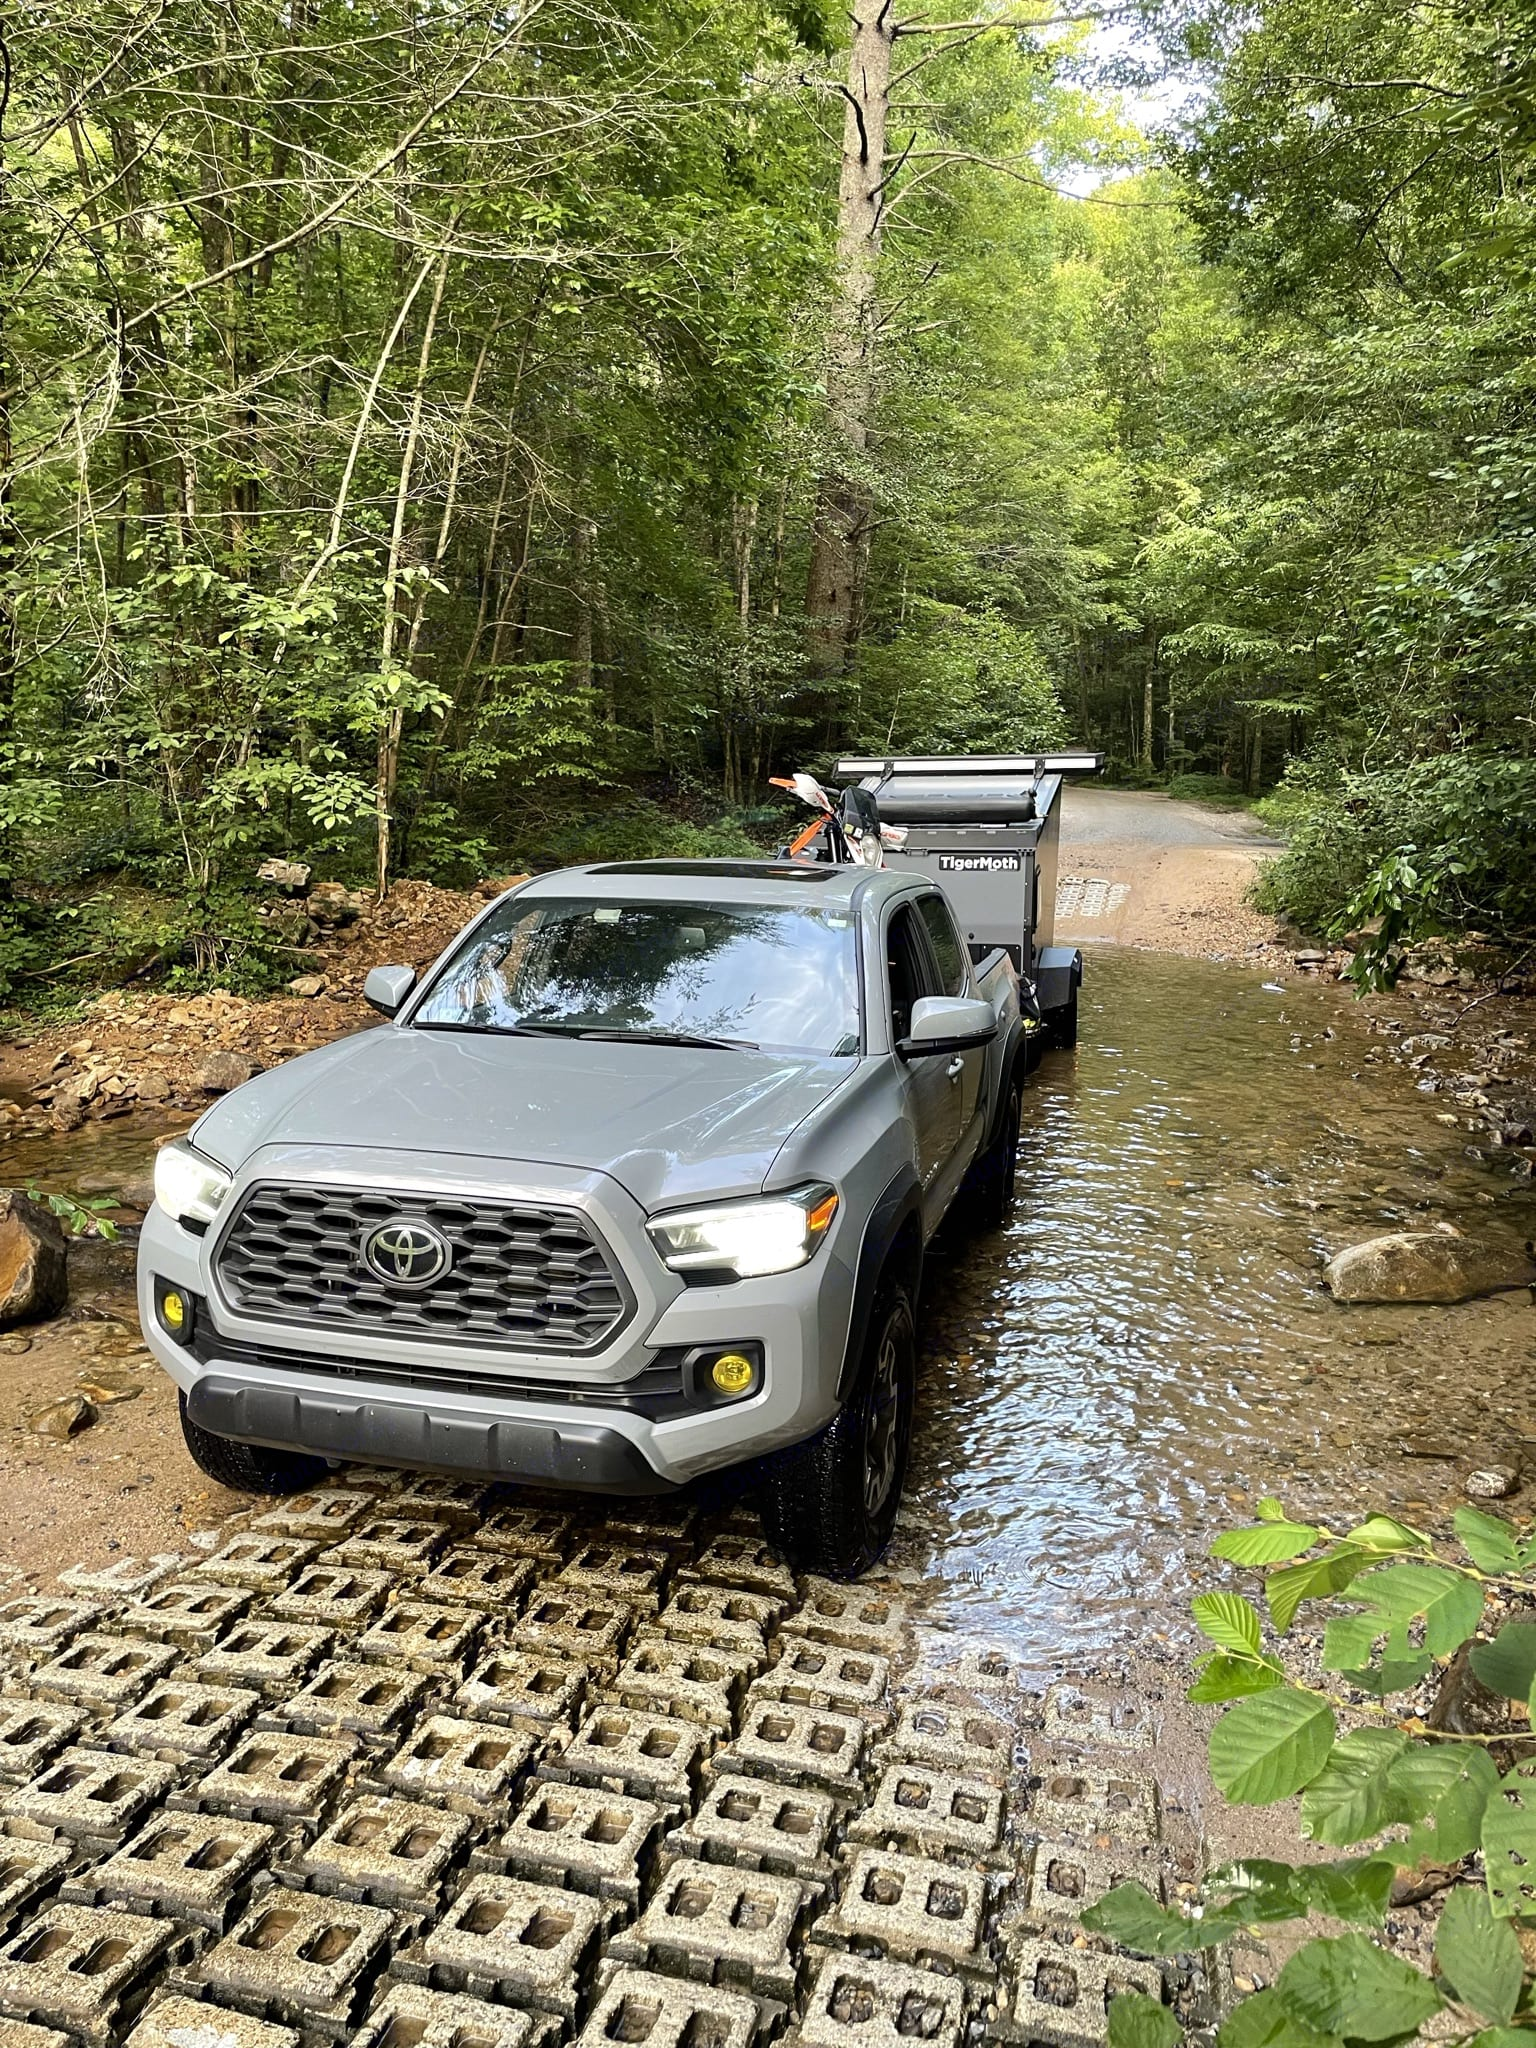 Crossing a tributary of the Chattahoochee River, Georgia. TAXA Outdoors Tigermoth Camper 2019